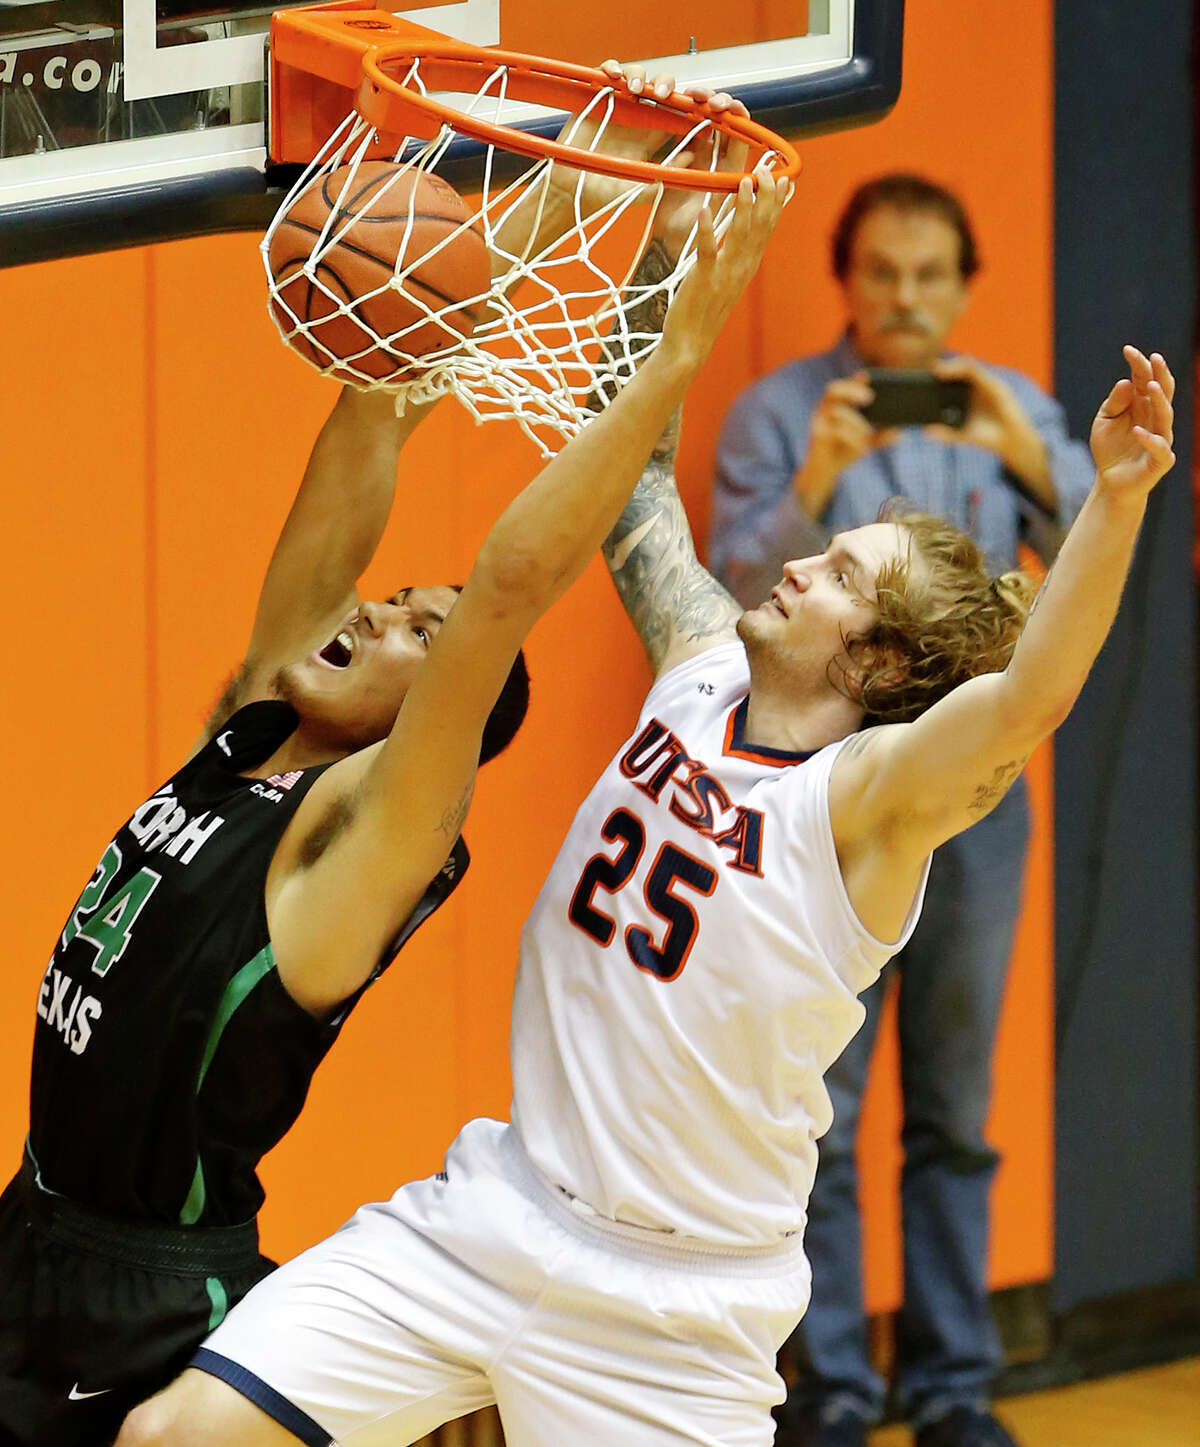 North Texas forward Zachary Simmons (24) dunks around UTSA forward Nick Allen (25) during second half action Saturday Dec. 30, 2017 at the UTSA Convocation Center. North Texas won 72-71.